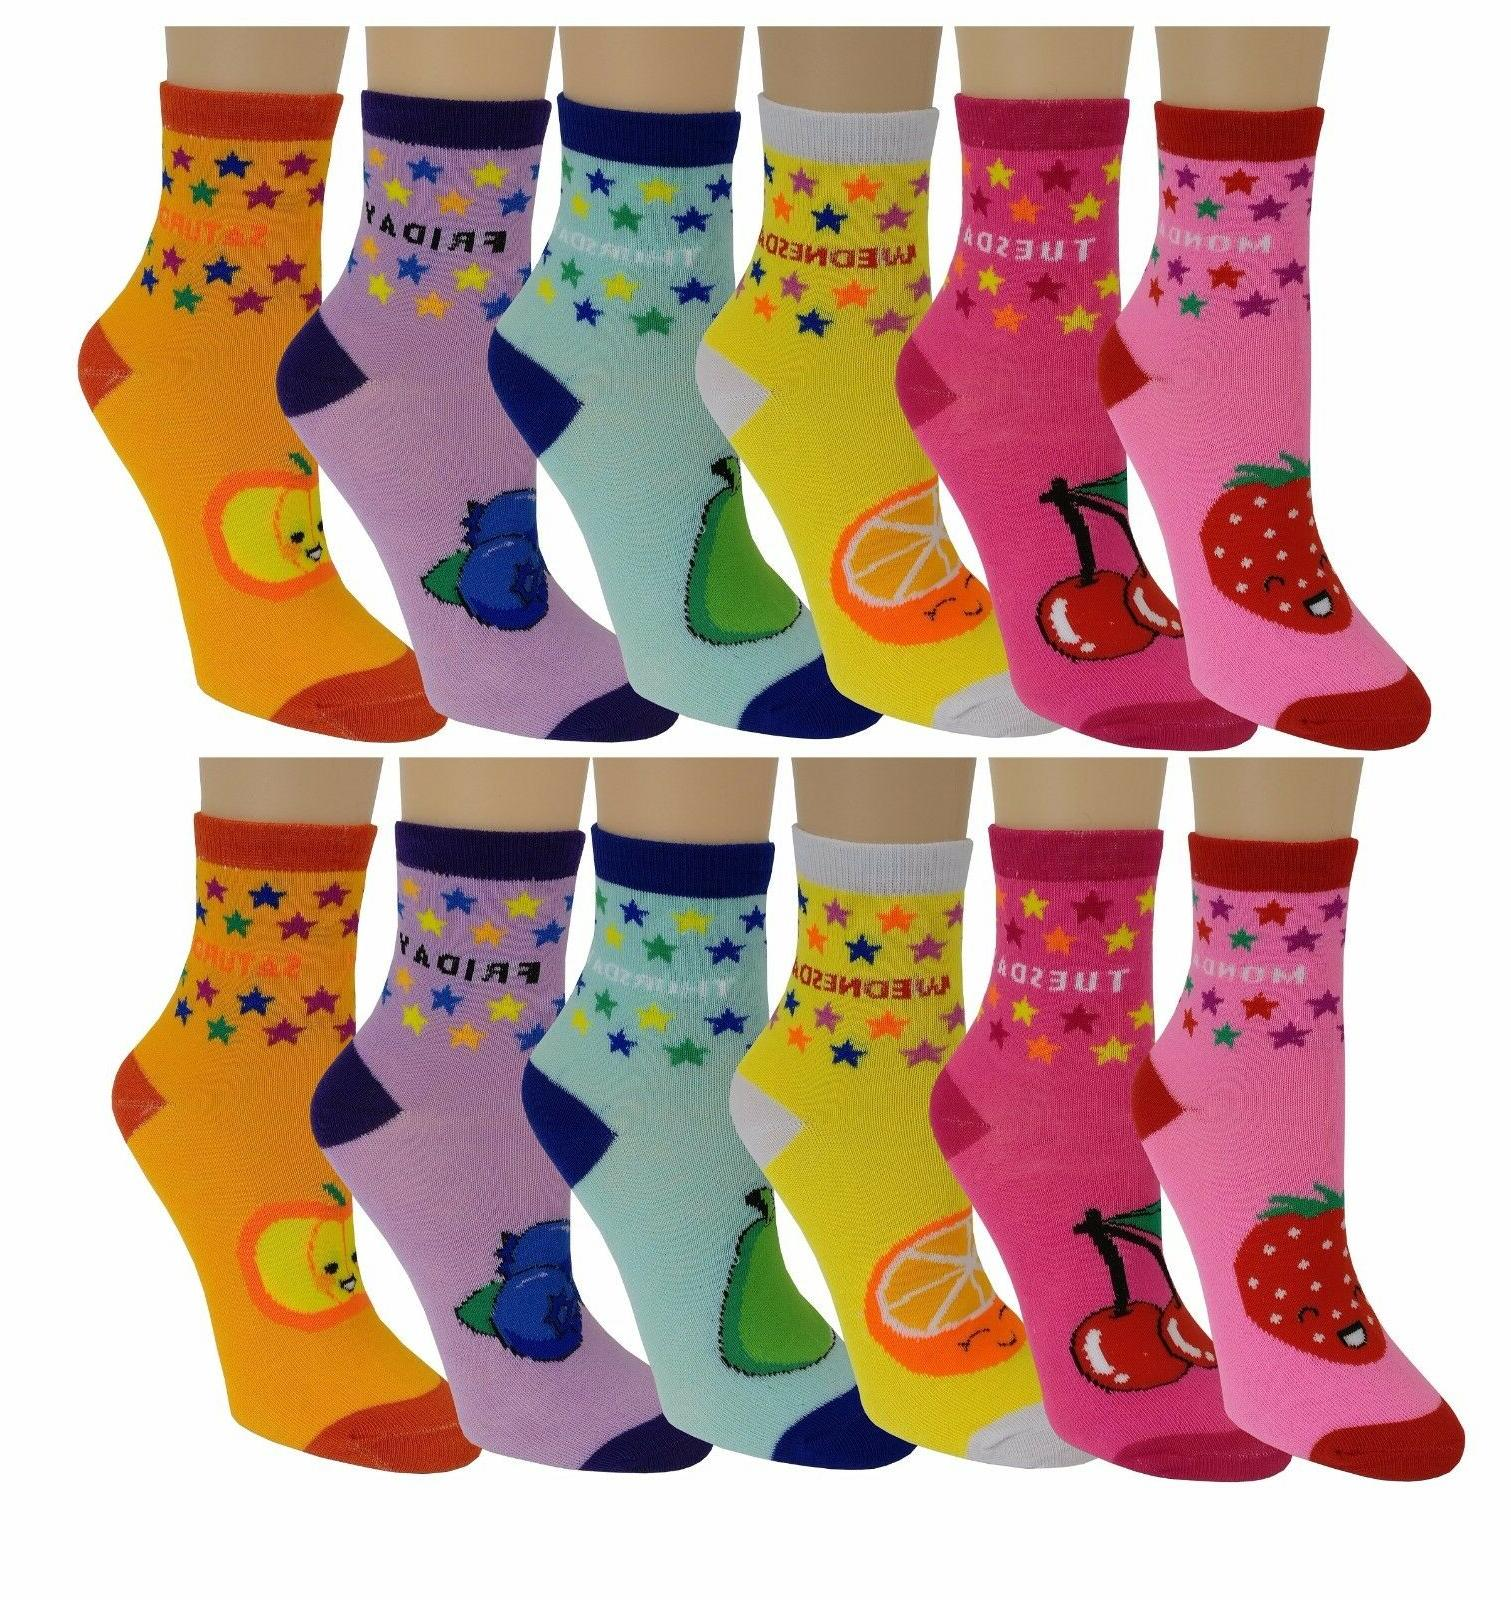 Ayla 12 Pairs Pack Kids Girls Colorful Creative Fun Design Socks